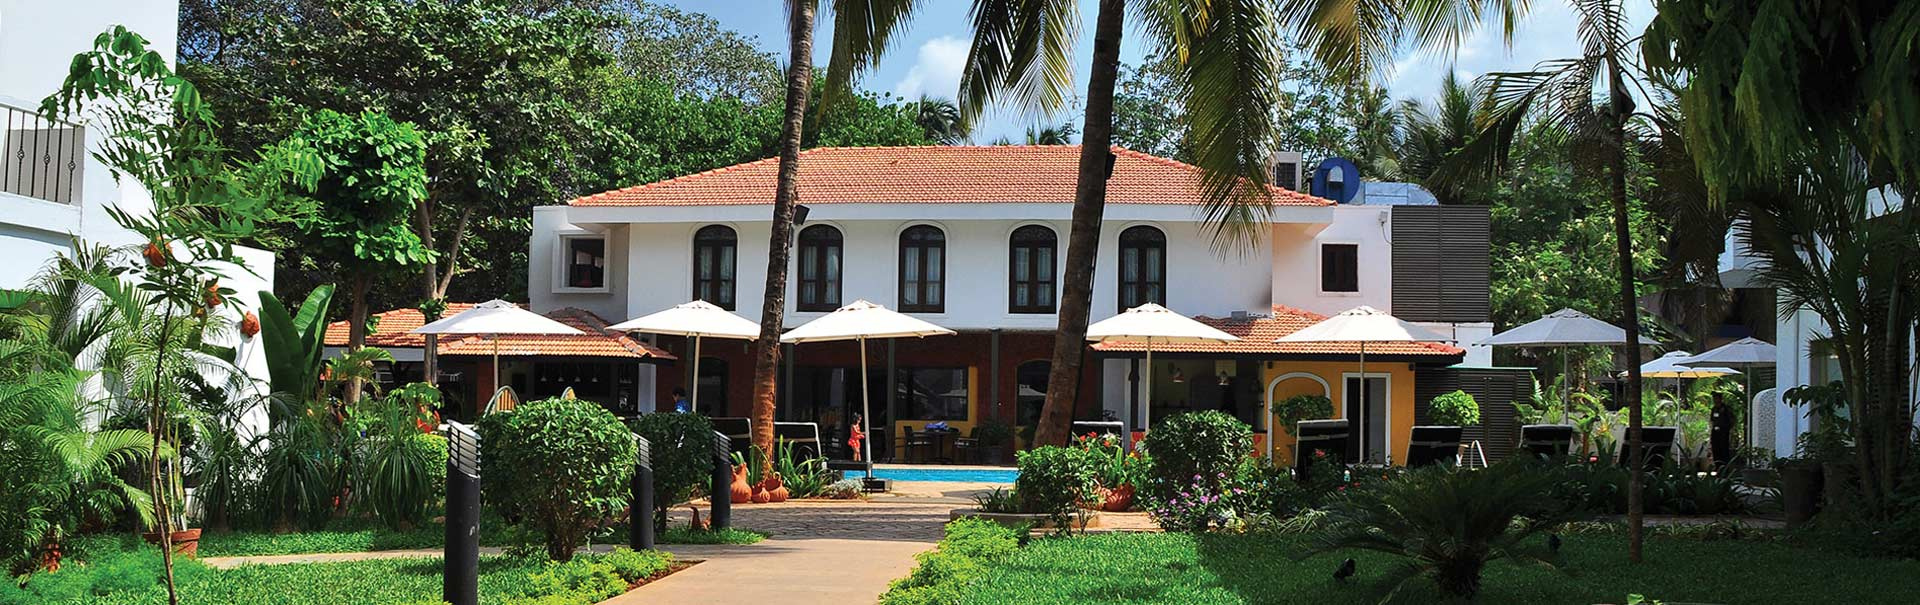 Goa with Kyriad Hotel (SHGA1) Banner